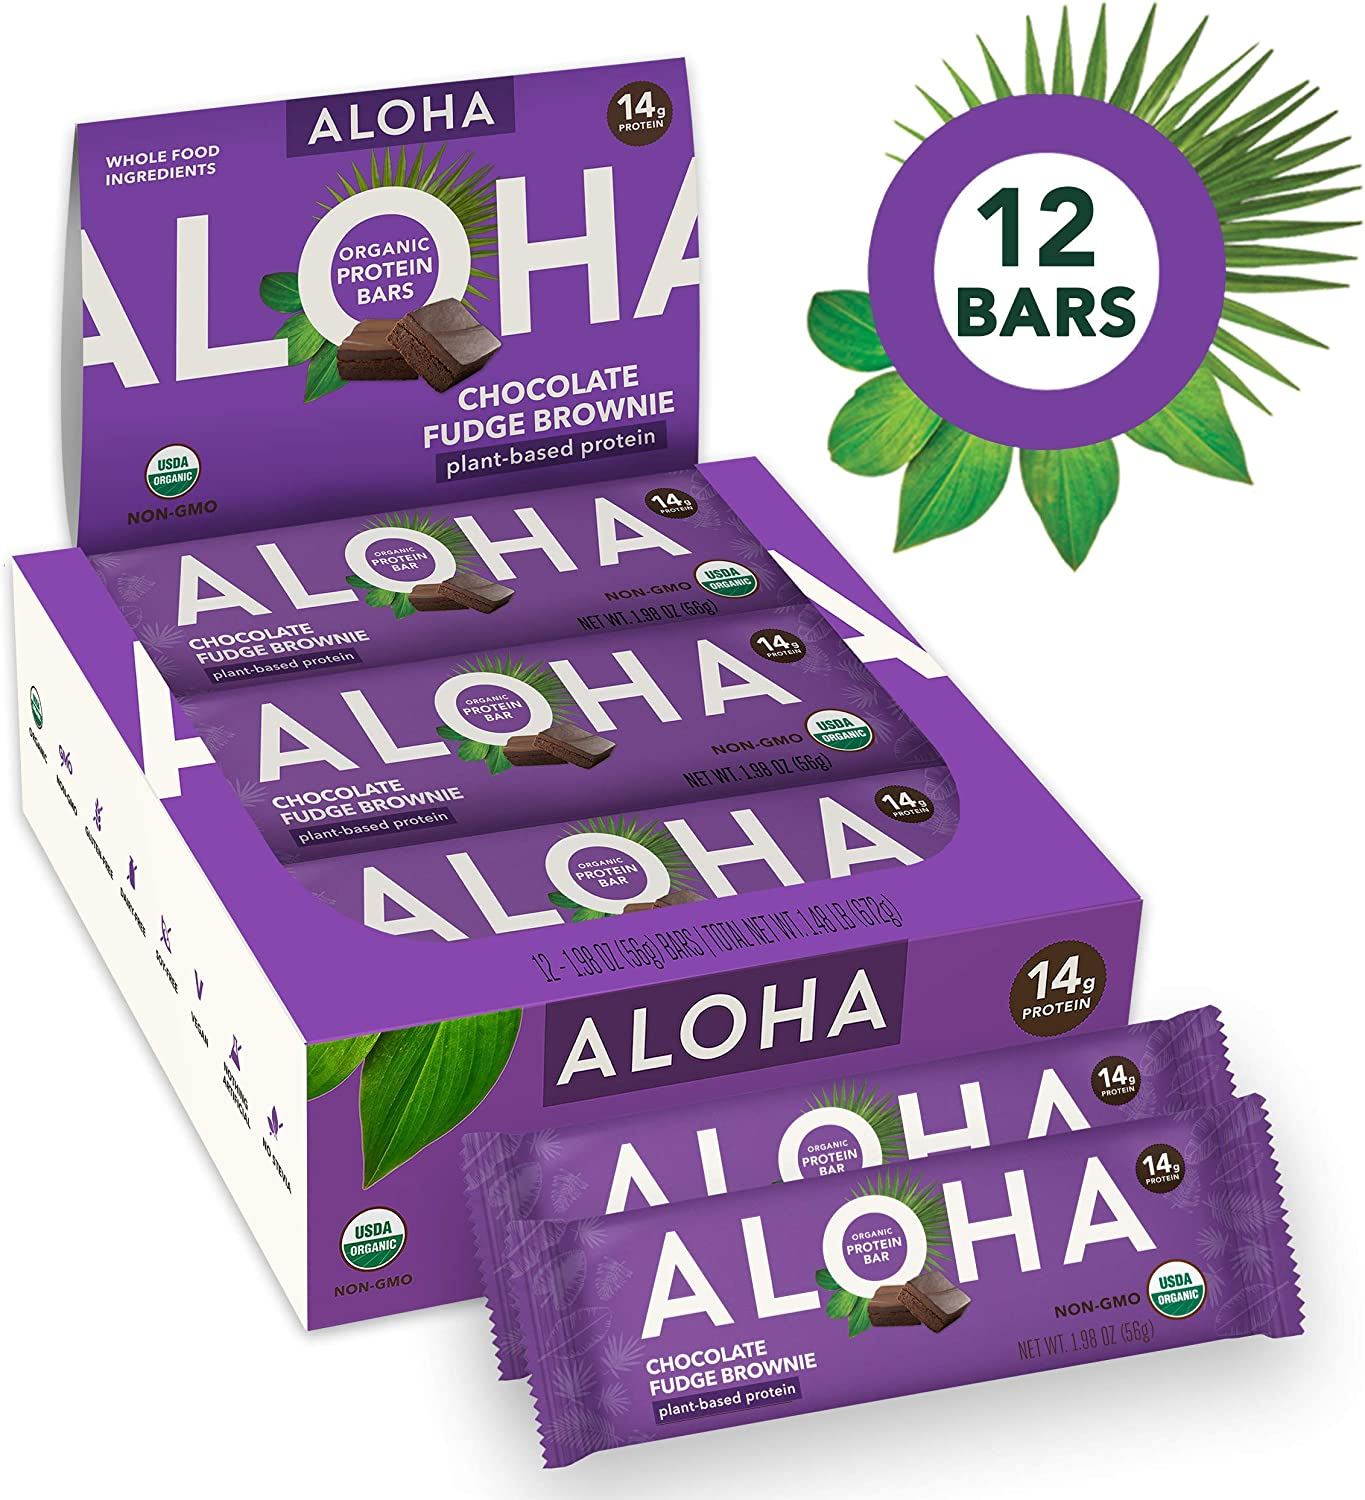 ALOHA Organic Plant Based Protein Bars |Chocolate Fudge Brownie | 12 Count, 1.9oz Bars | Vegan, Low Sugar, Gluten Free, Paleo, Low Carb, Non-GMO, Stevia Free, Soy Free, No Sugar Alcohols